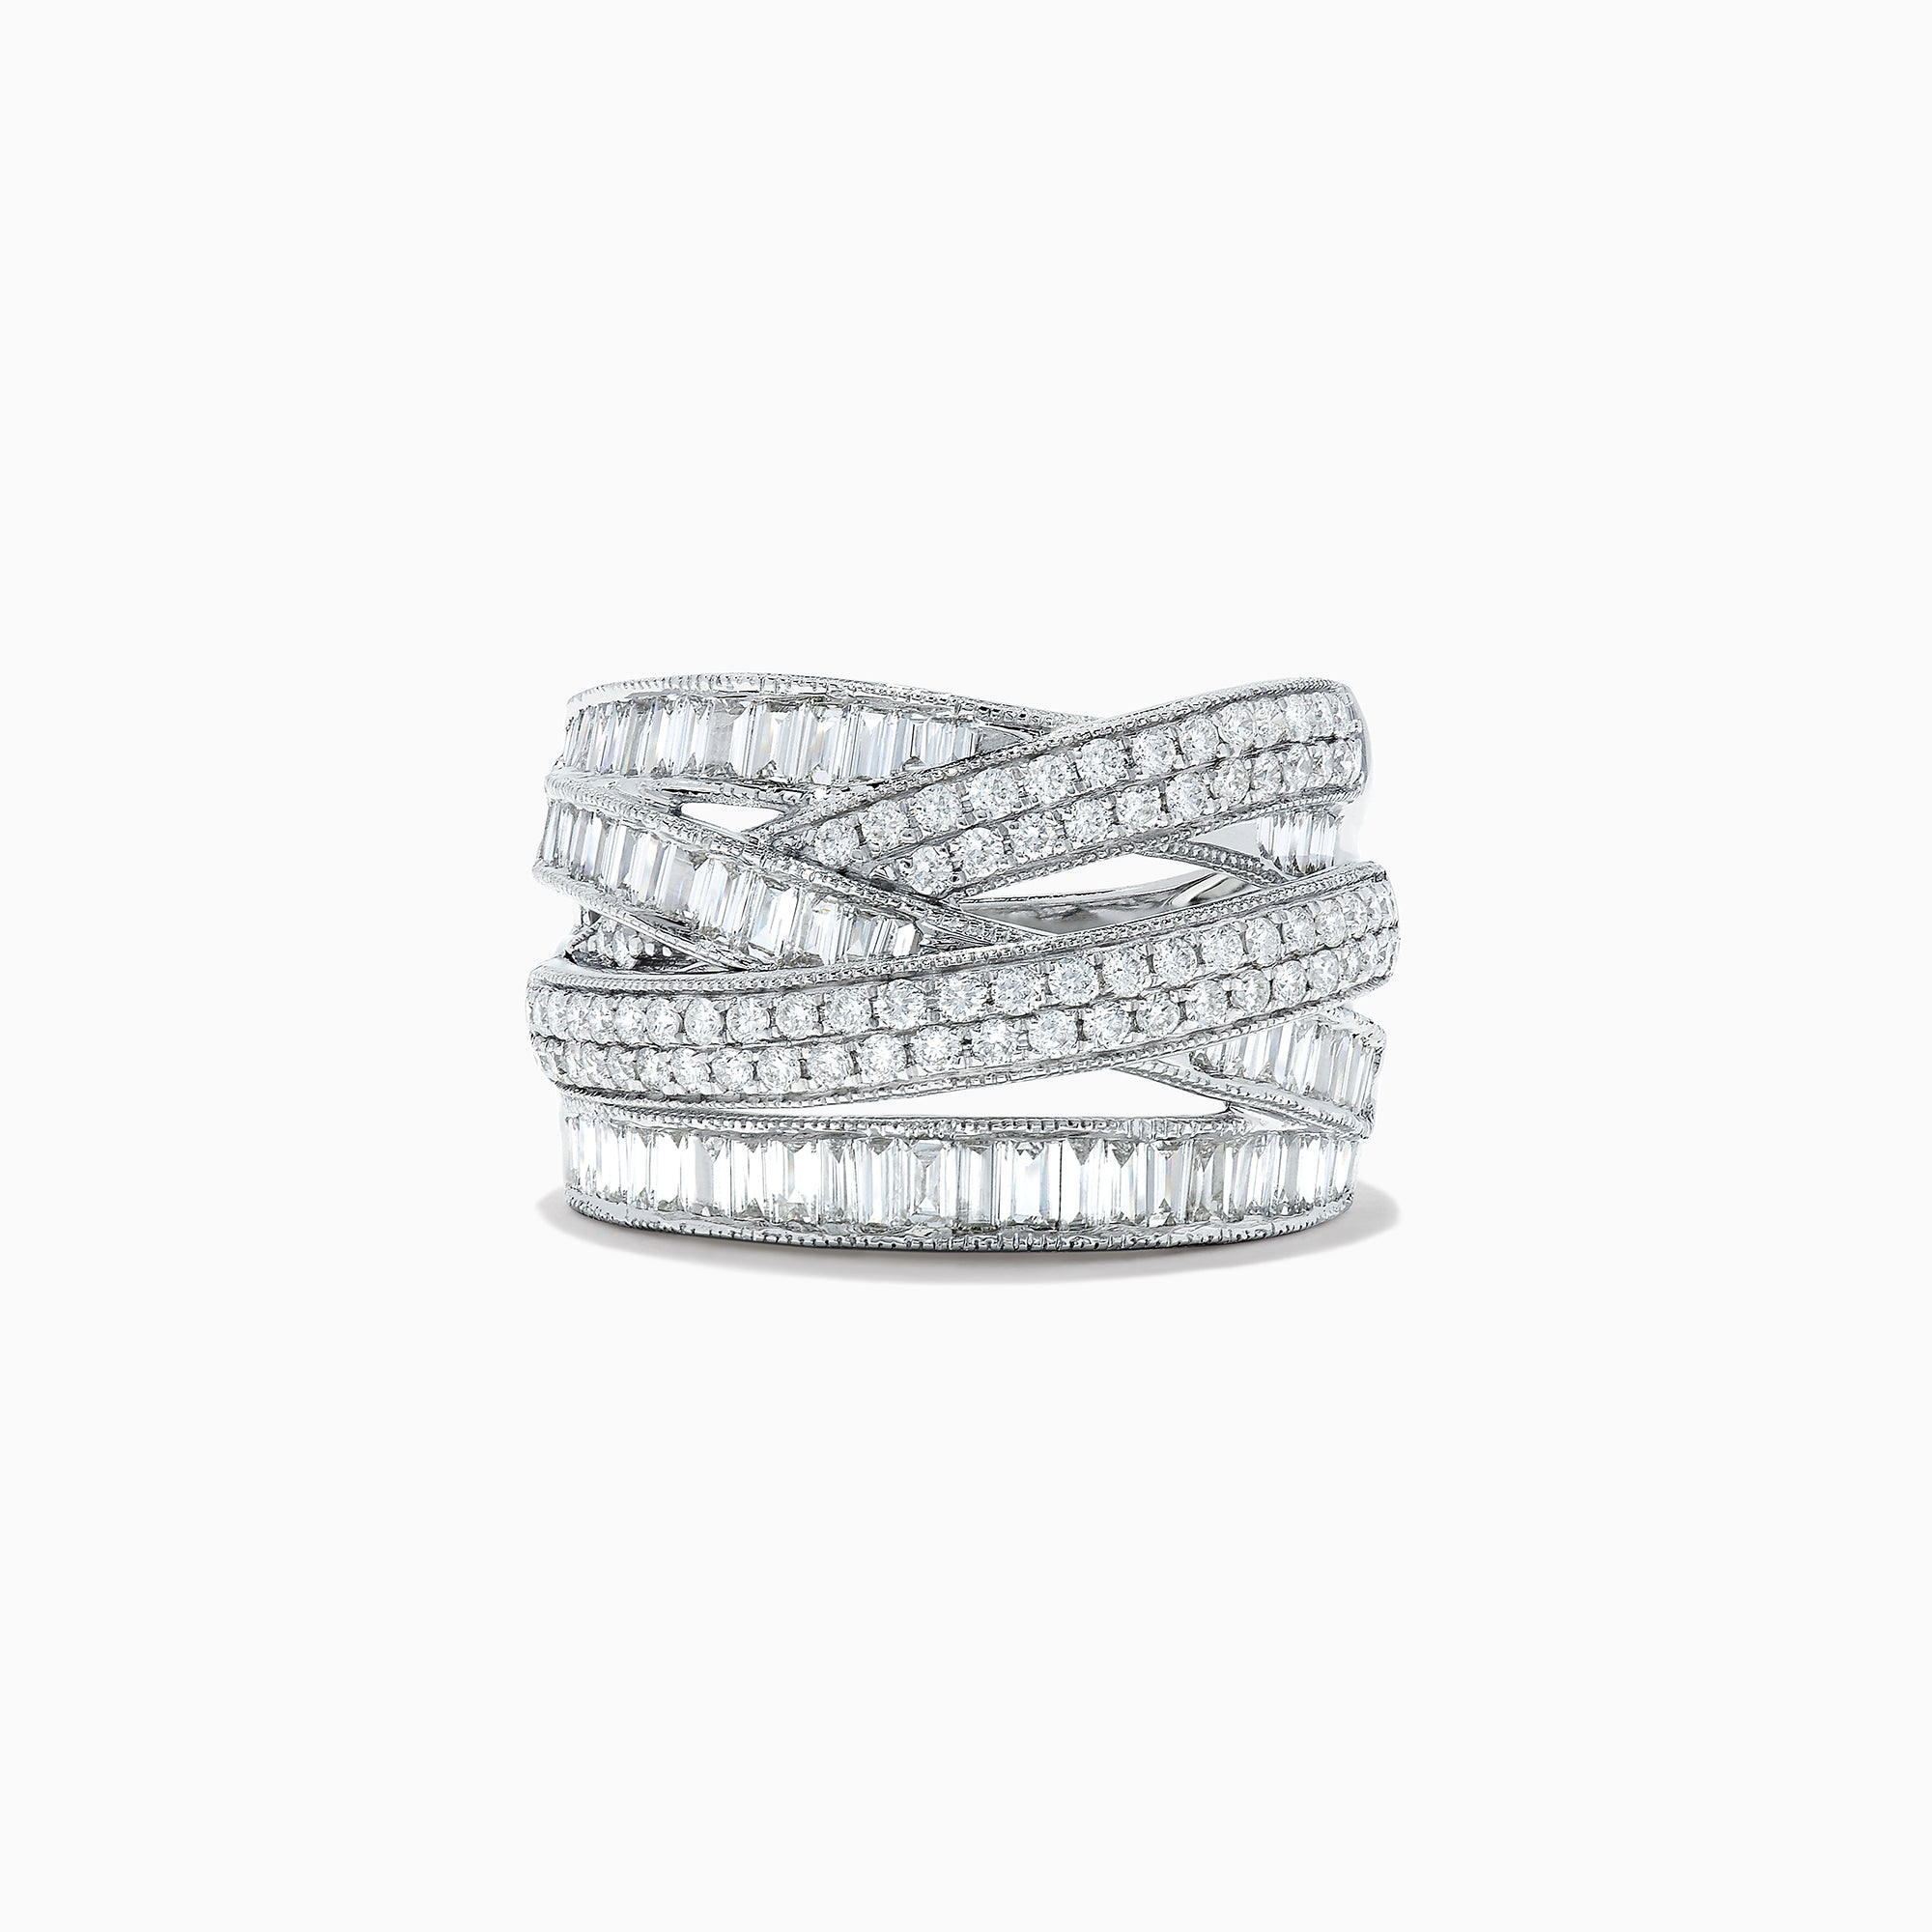 Effy Classique 14K White Gold Diamond Crossover Ring, 1.47 TCW